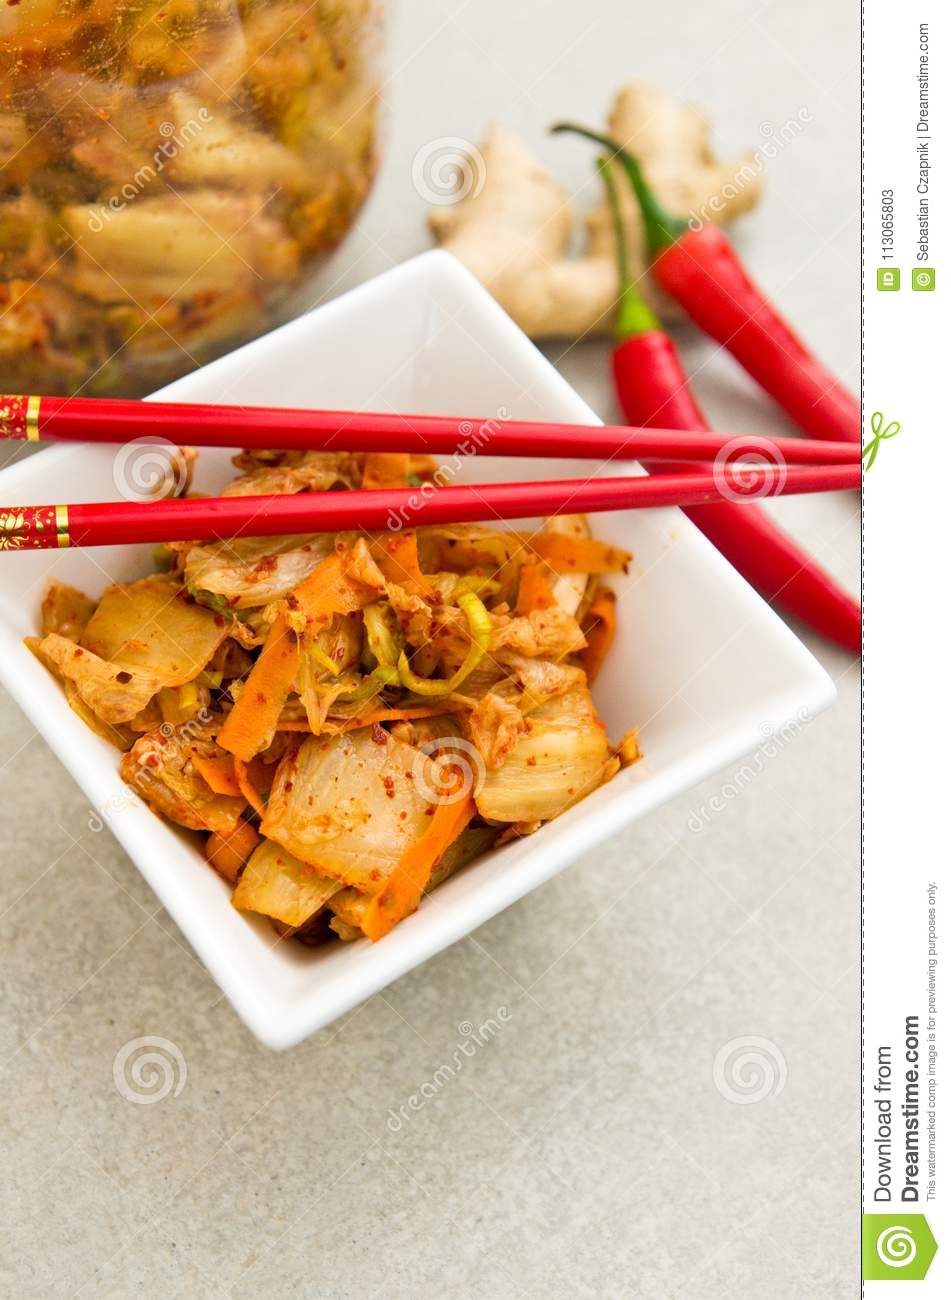 White Bowl Of Korean Kimchi Food With Chopsticks Stock Image Image Of Korea Spice 113065803